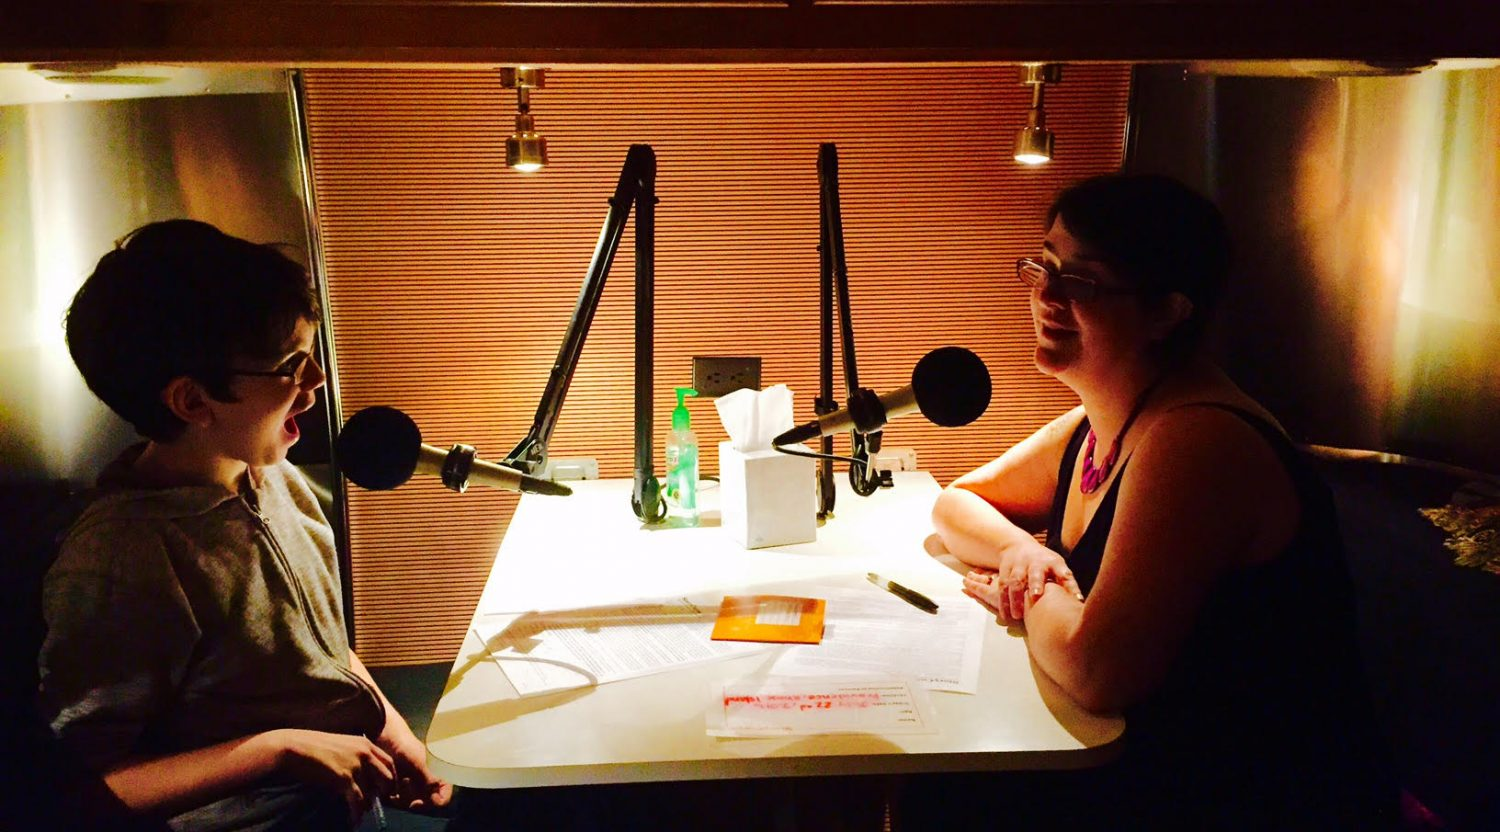 Ways to Support StoryCorps